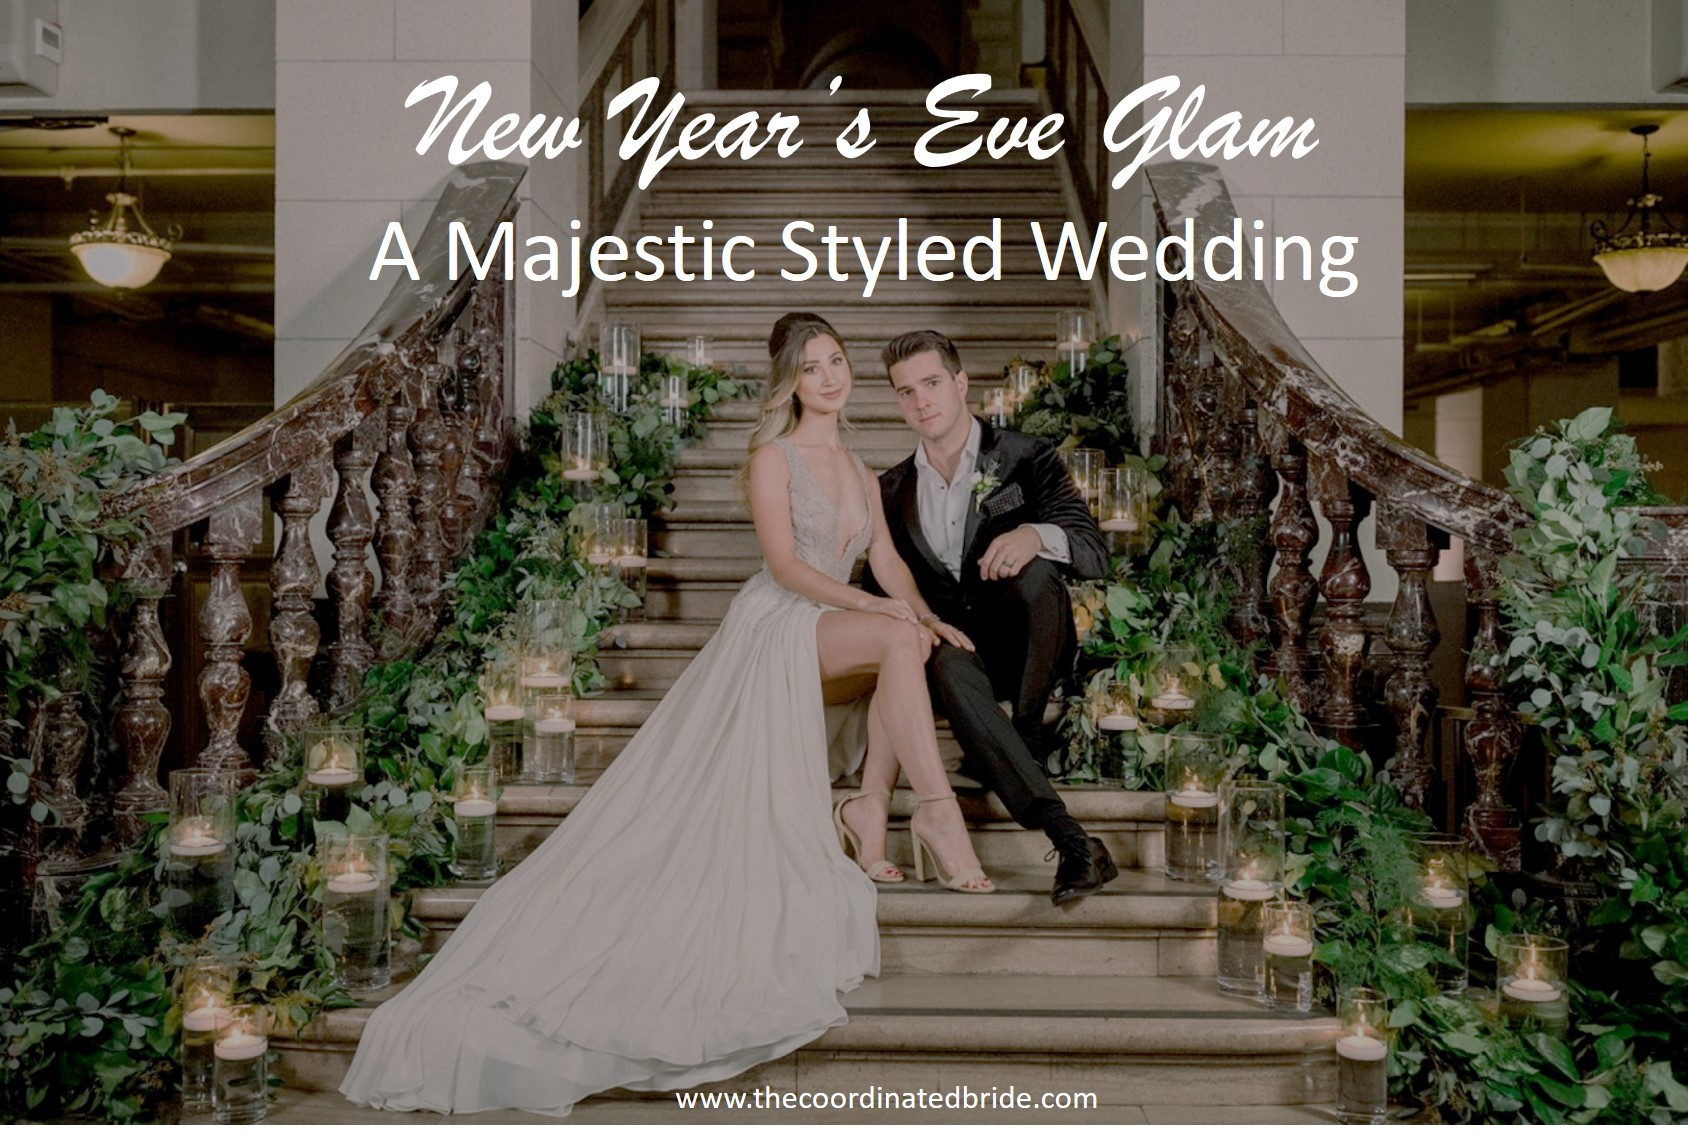 A Majestic New Year's Eve Styled Wedding